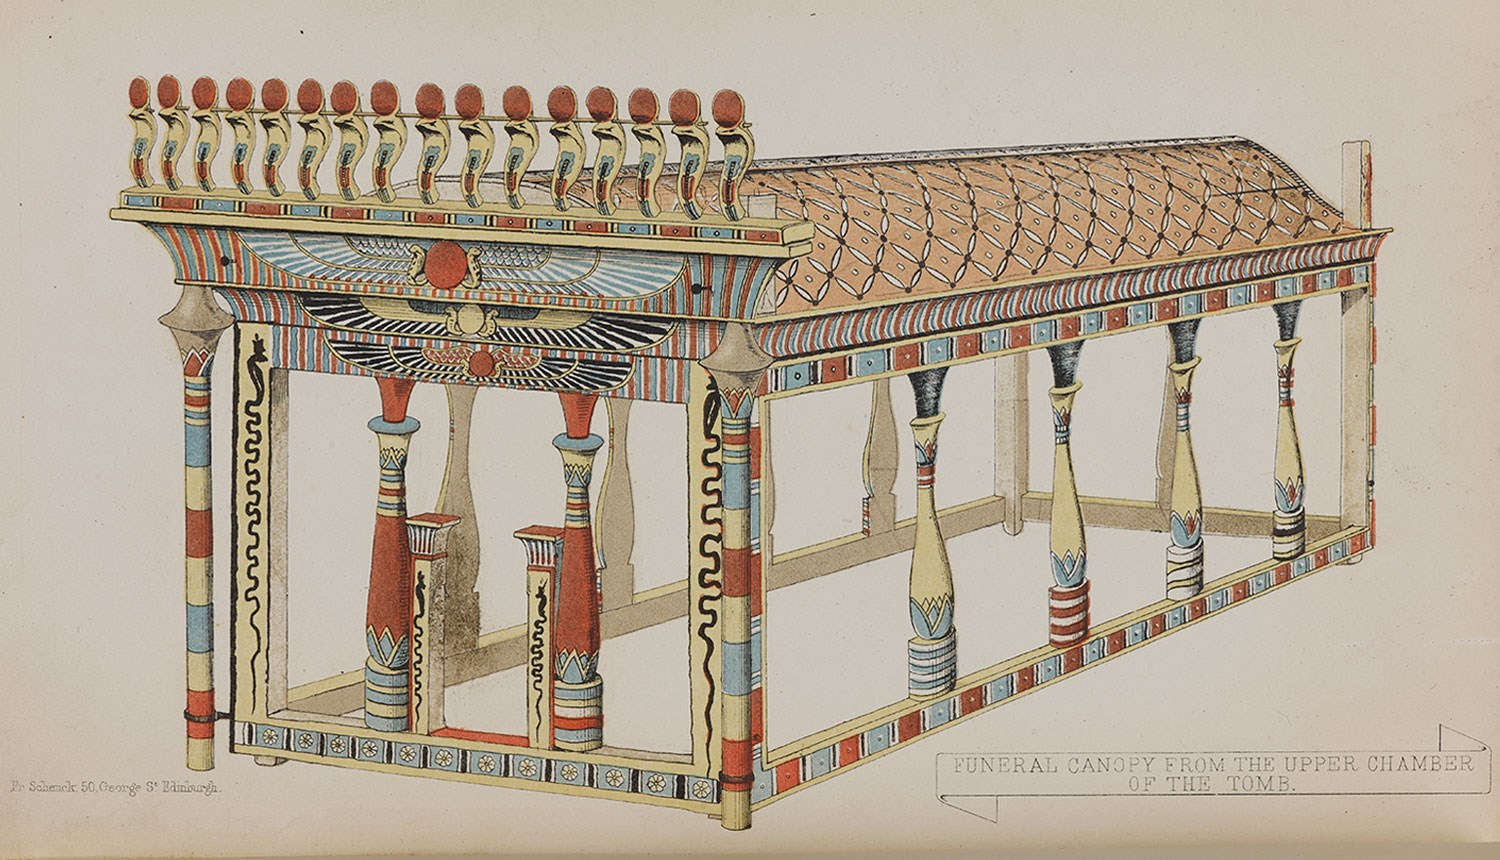 Illustration of a funerary canopy excavated by A.H. Rhind in the Rhind Tomb at Sheikh Abd el-Qurna, Thebes from his book Thebes, Its Tombs and their Tenants (1862).